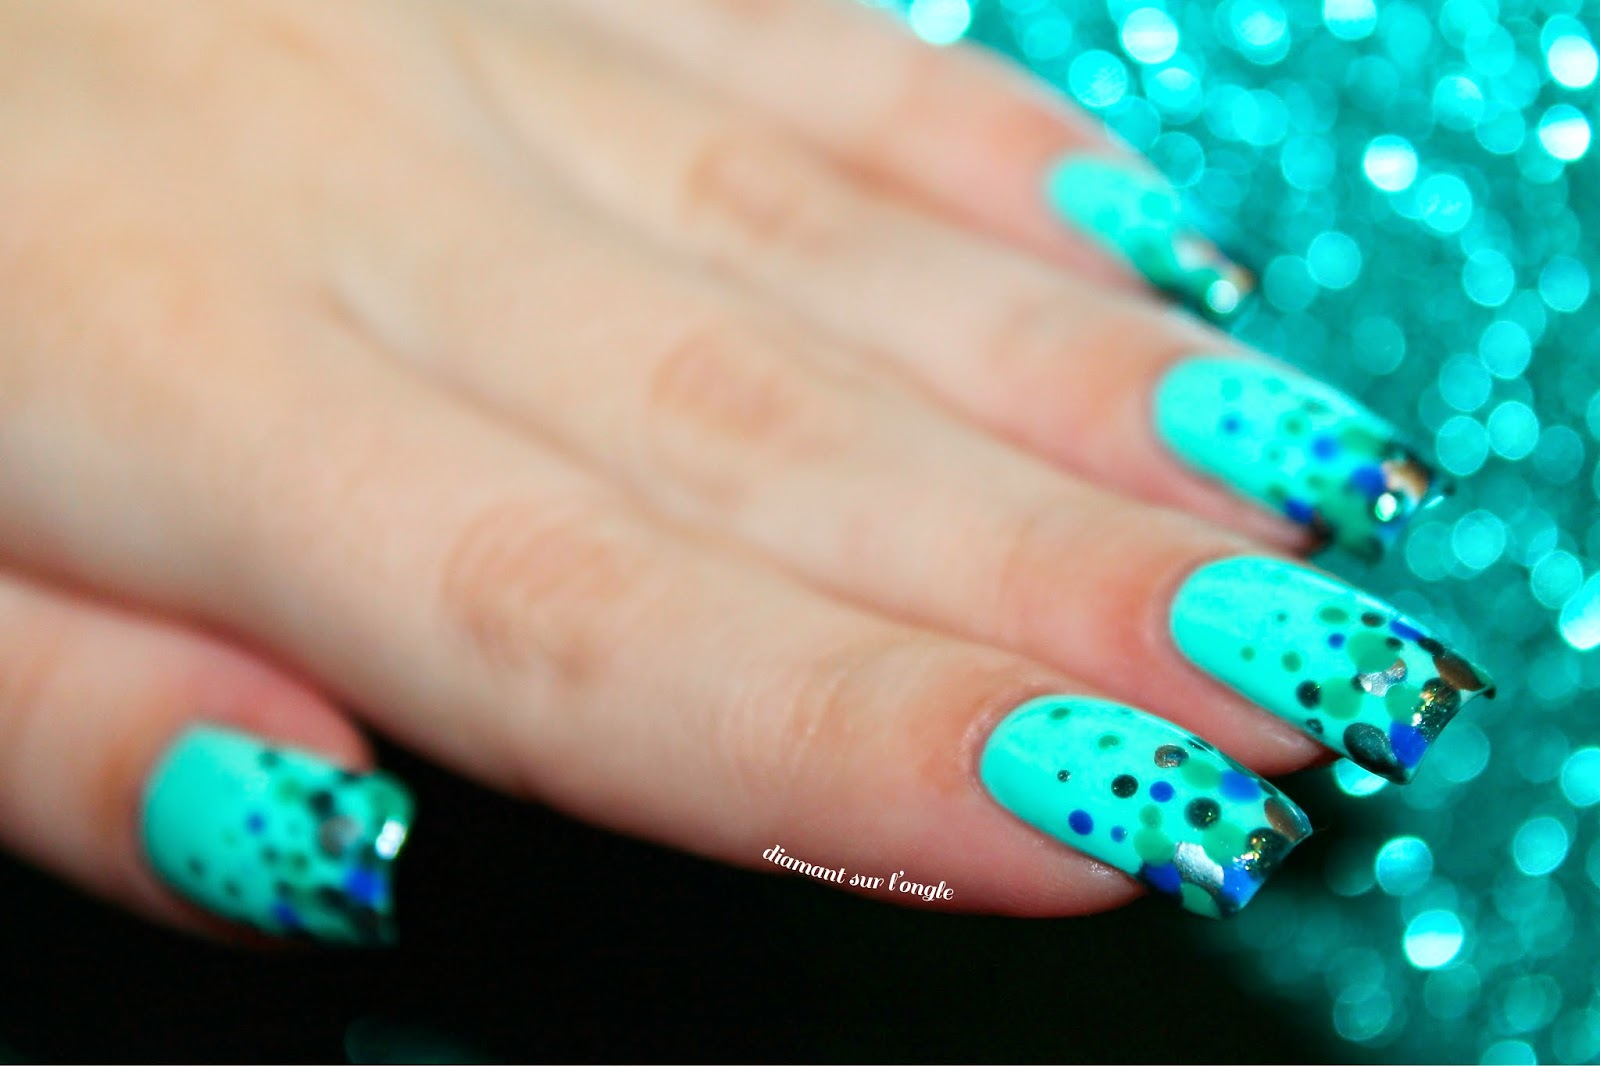 A mermaid french manicure made with a dotting tool